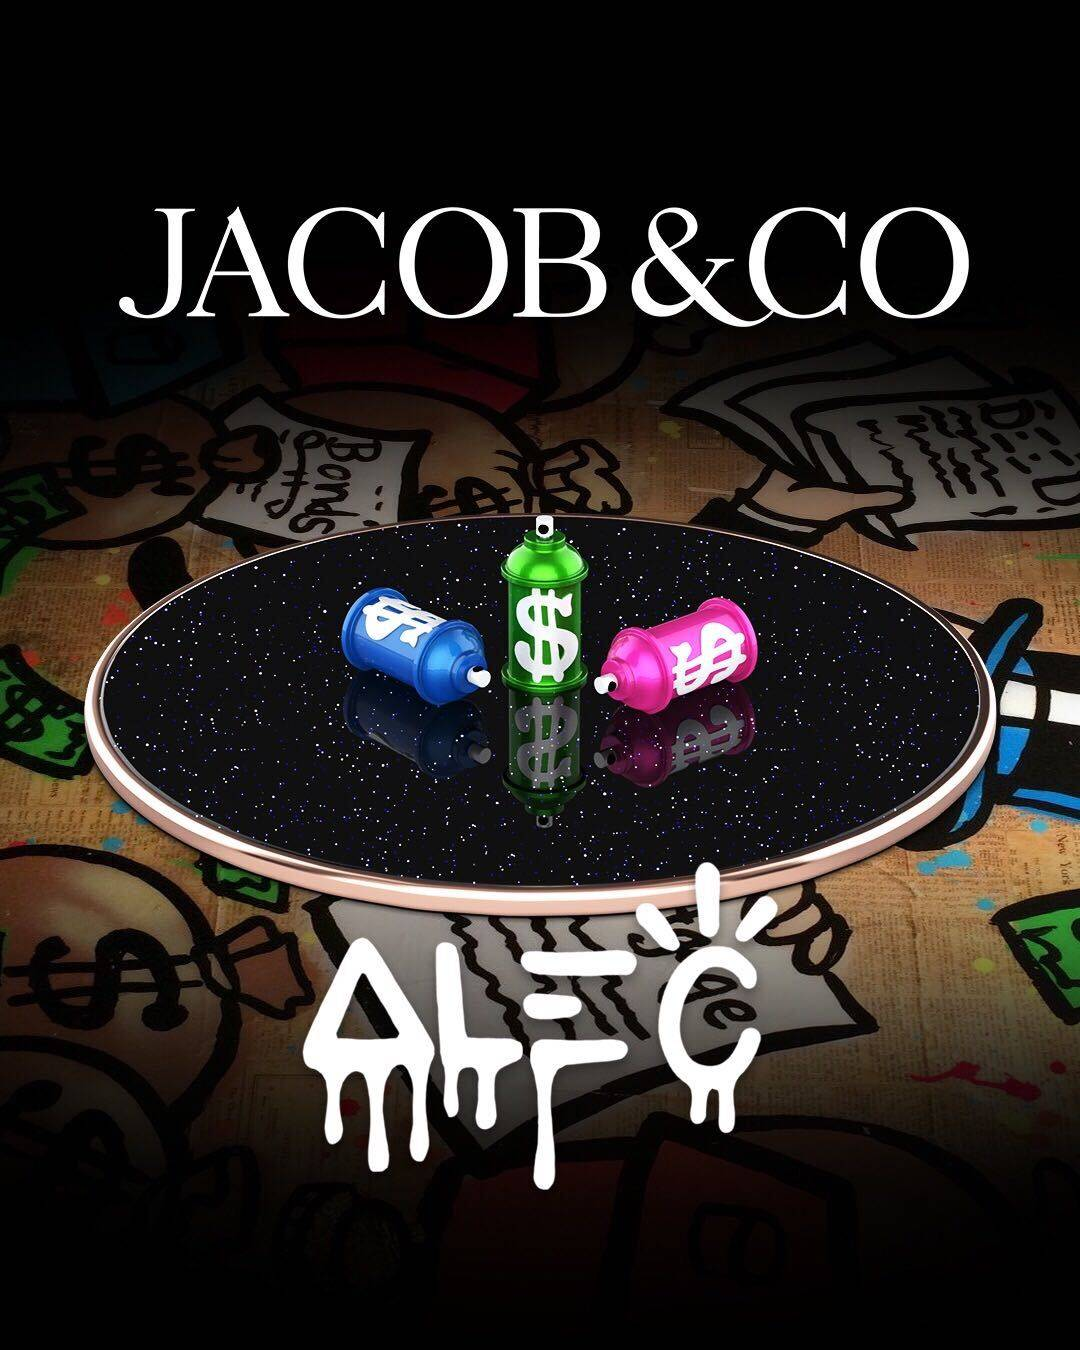 JACOB_CO_x_ALEC_MONOPOLY_PAINT_CANS.jpg